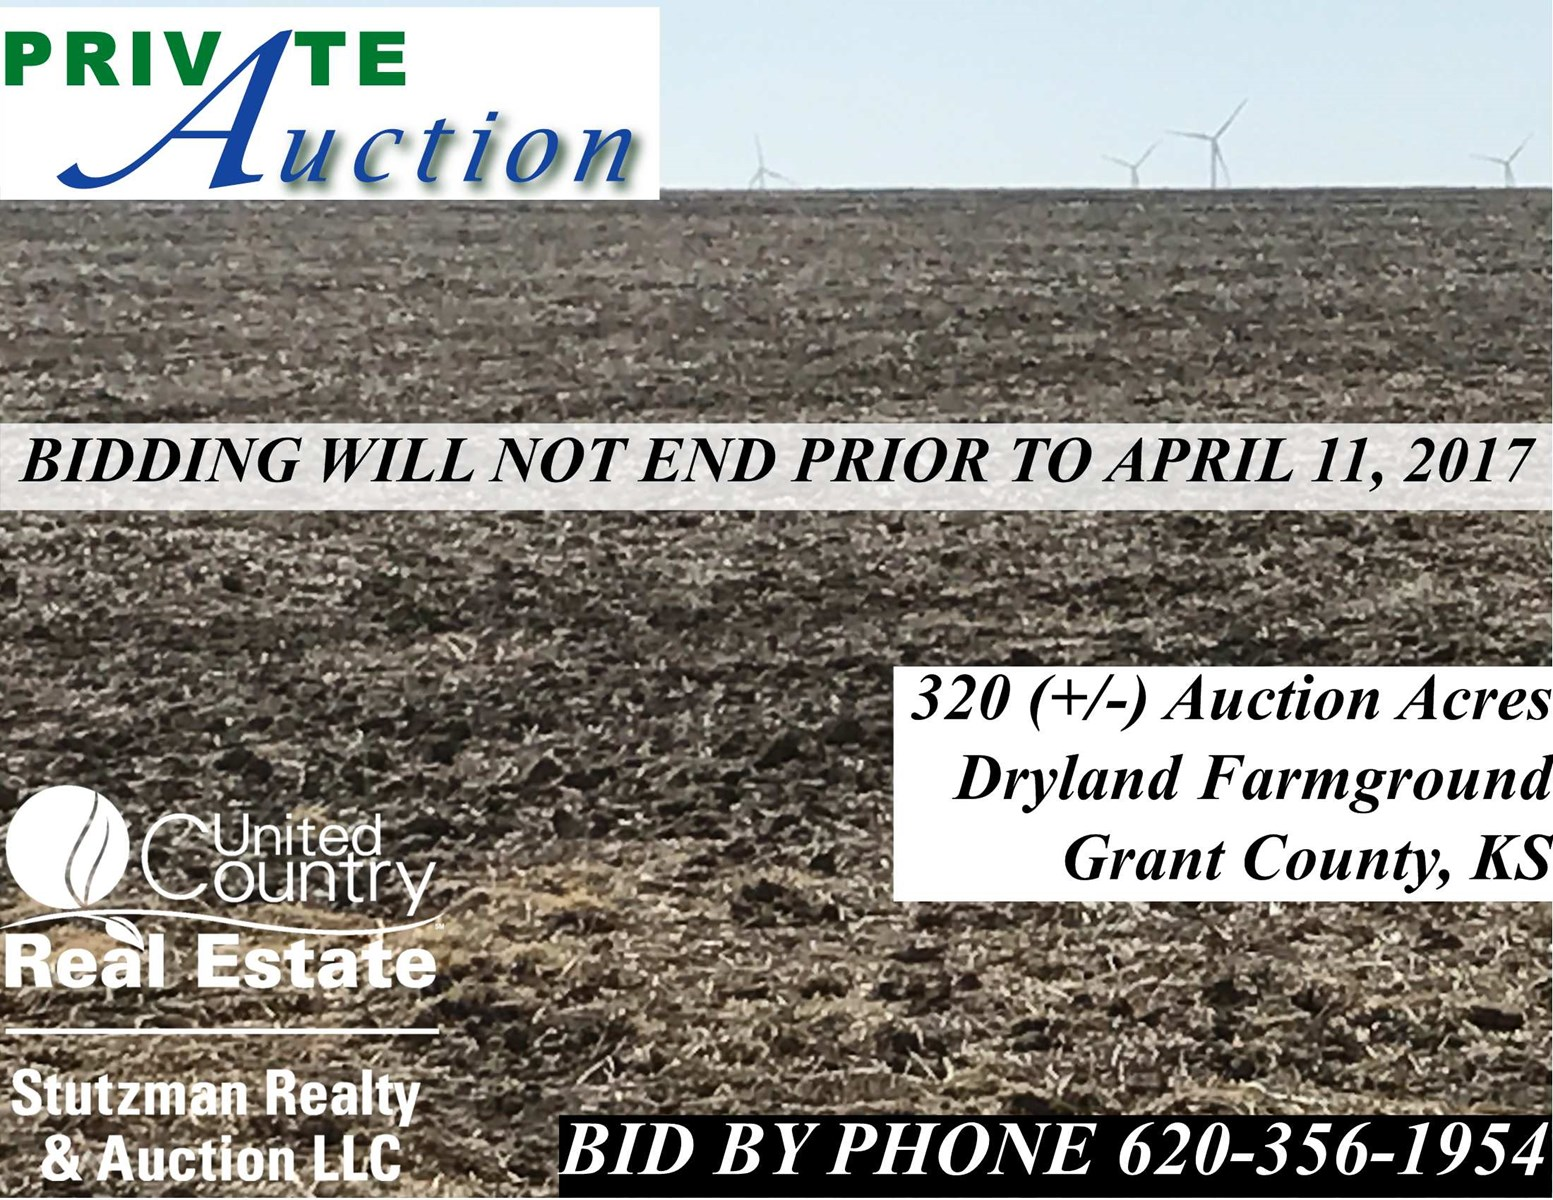 320+/- Acres of Dryland Farmground in Grant County, Kansas